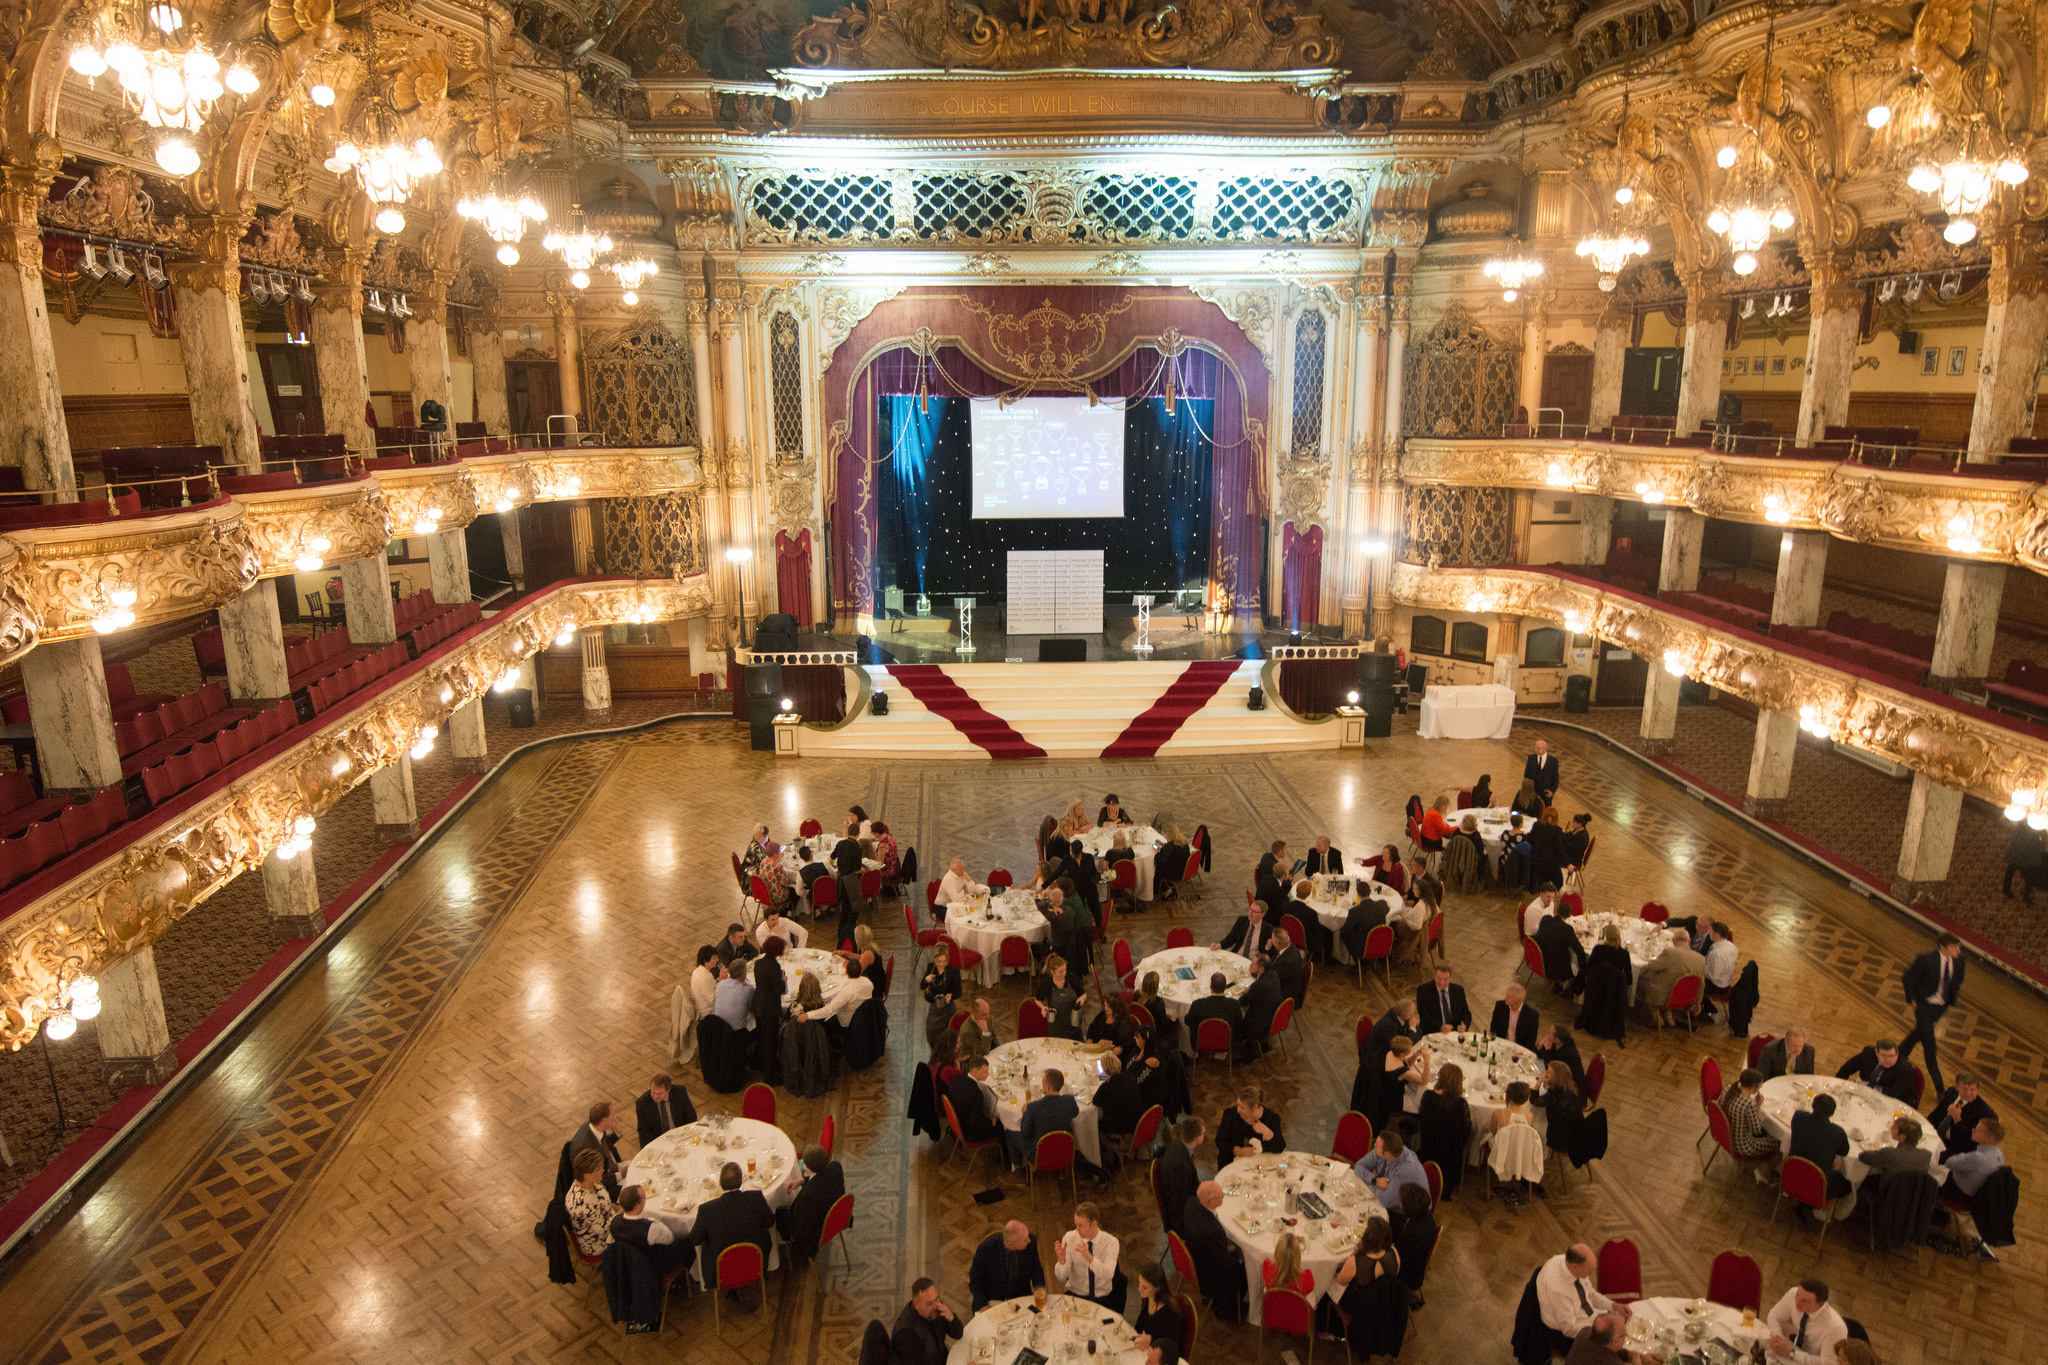 Tower Ballroom in Blackpool was venue for the North West ceremony, October 12